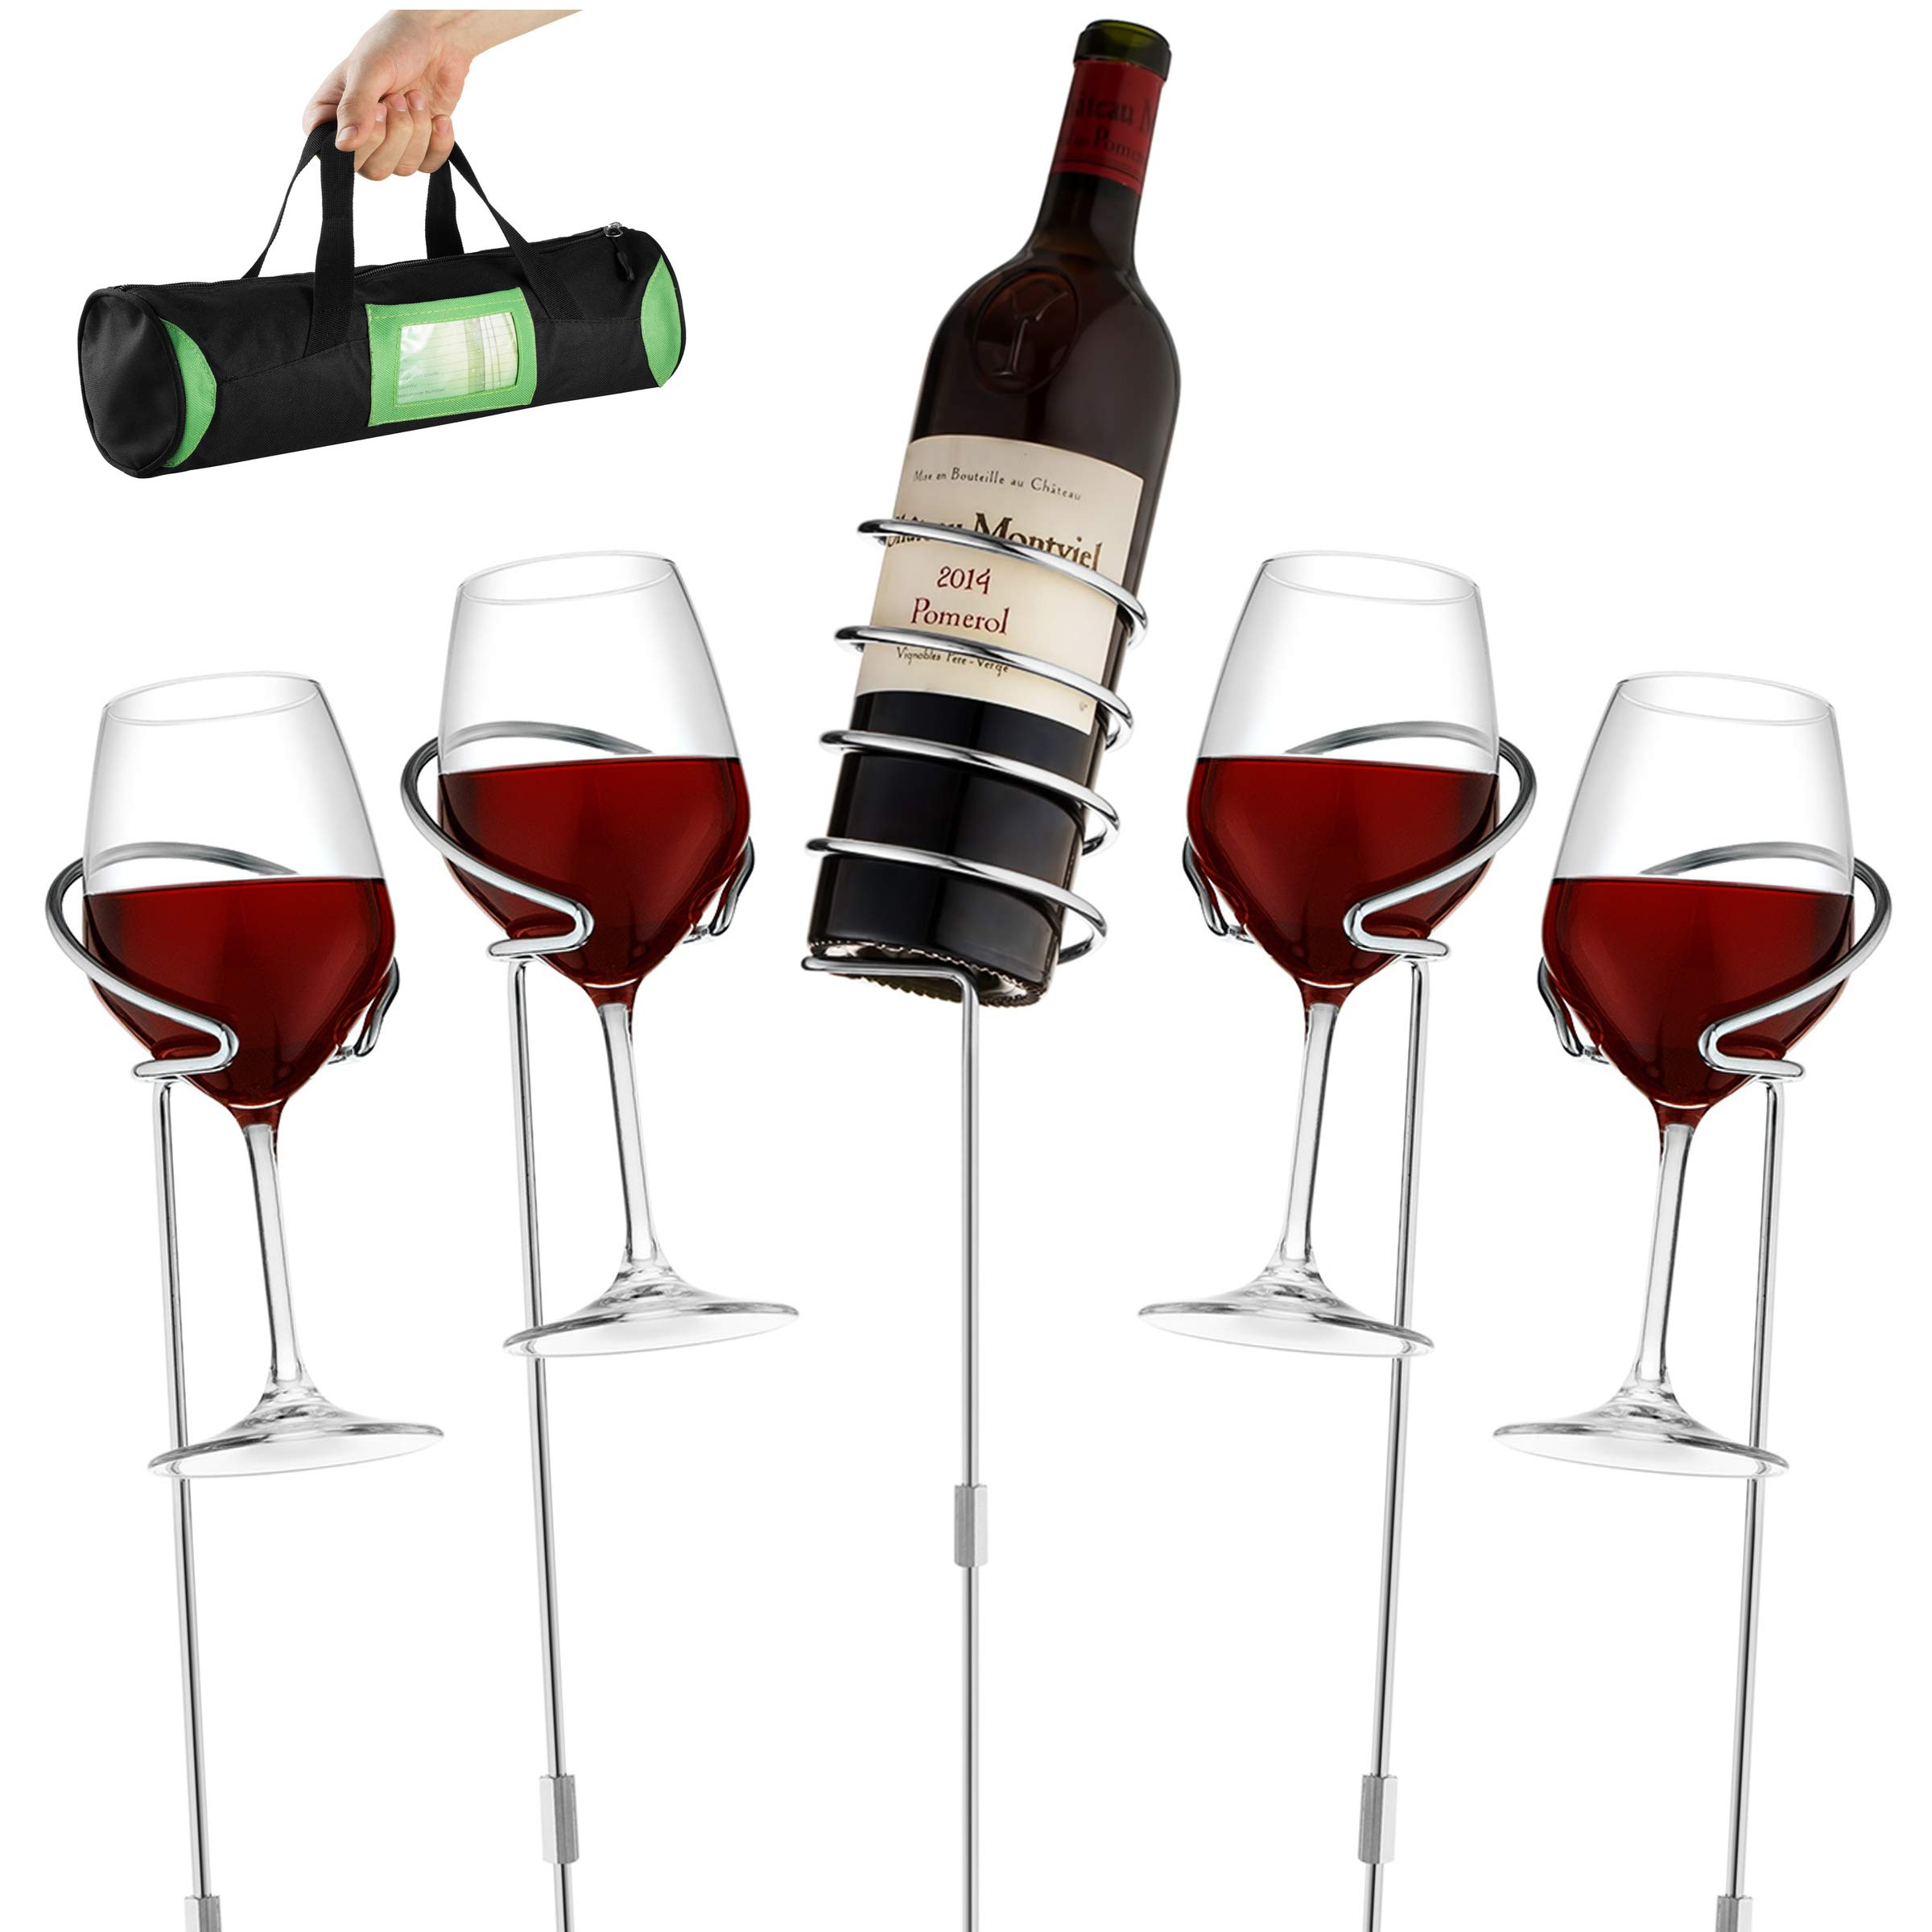 Wine Bottle & Cup Standing Holder Rack | Adjustable Height, Durable Metallic Frame, Sturdy Base & Secure Grip | Holds Bottles Of Wine, Beer,Champagne,Beverages,Glasses& More (5 Pieces Set) by Outdoorwares